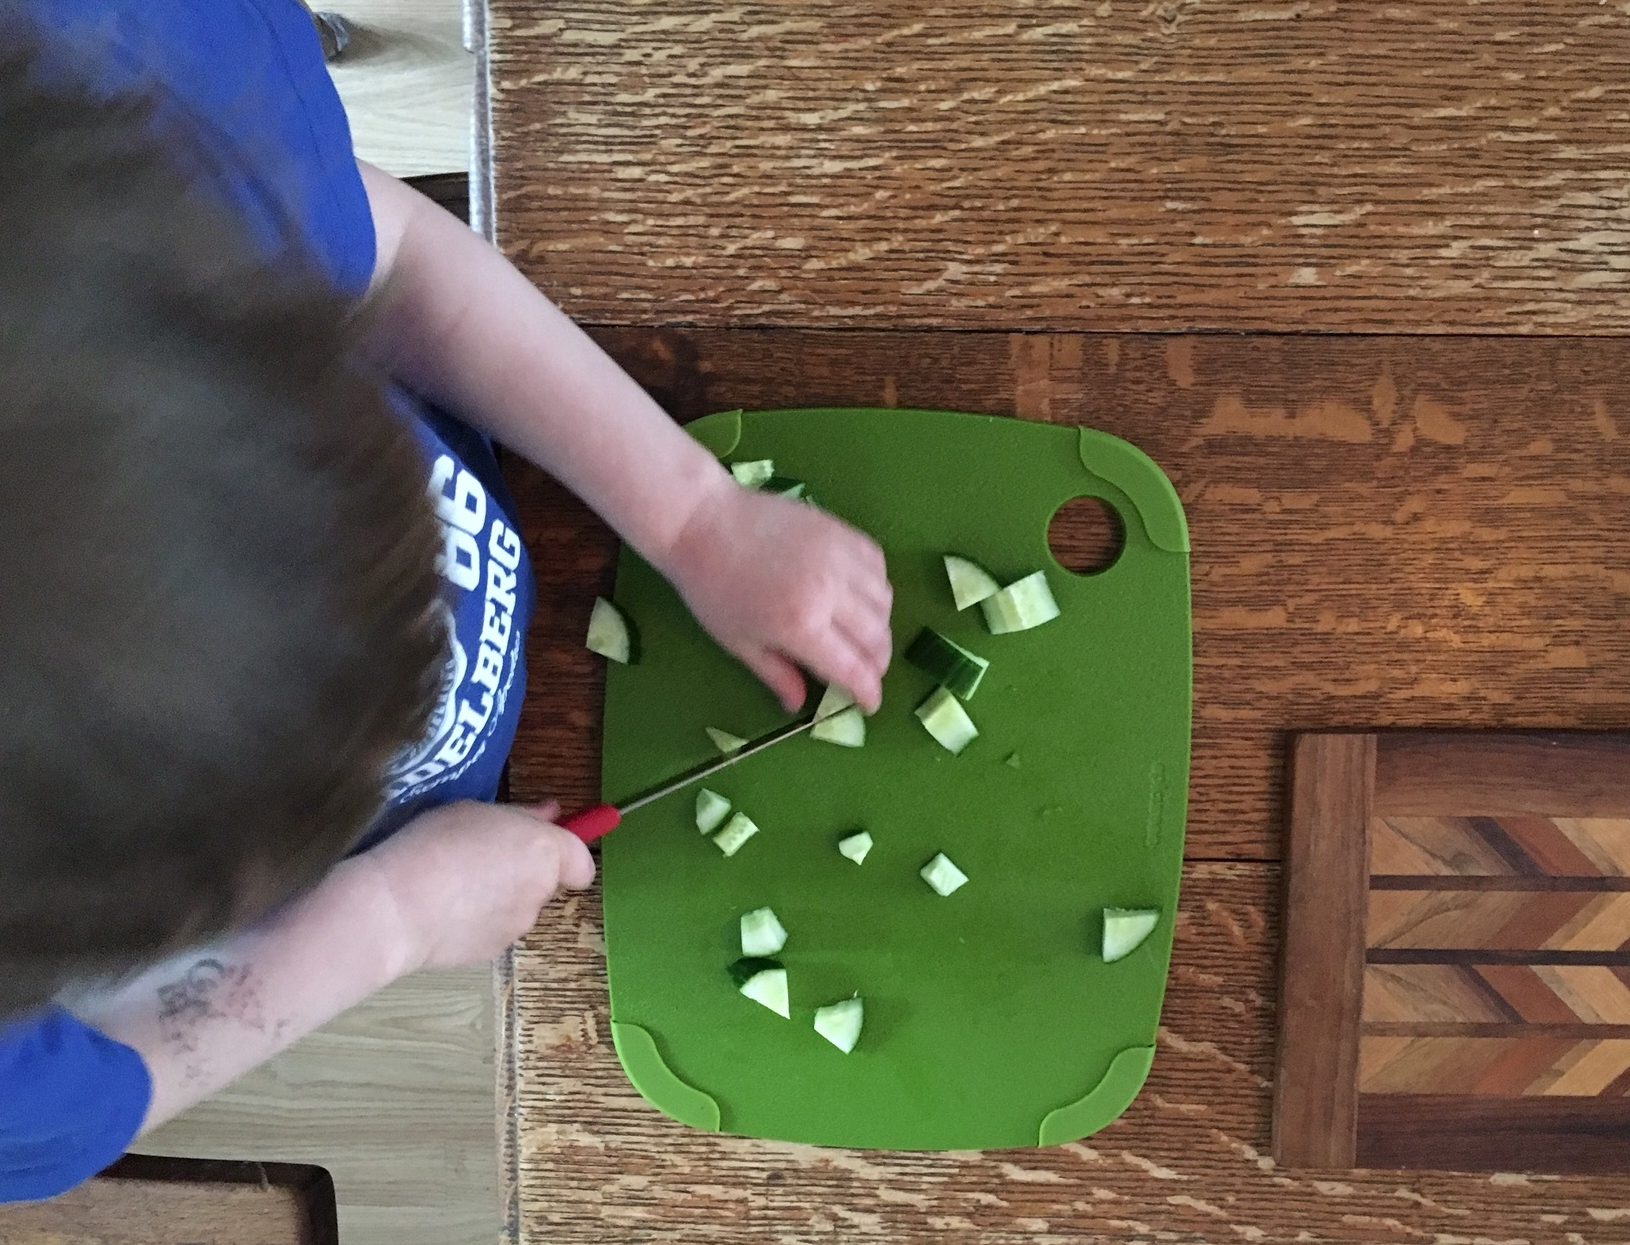 Cash at age 4, using a small, serrated knife to chop cucumbers